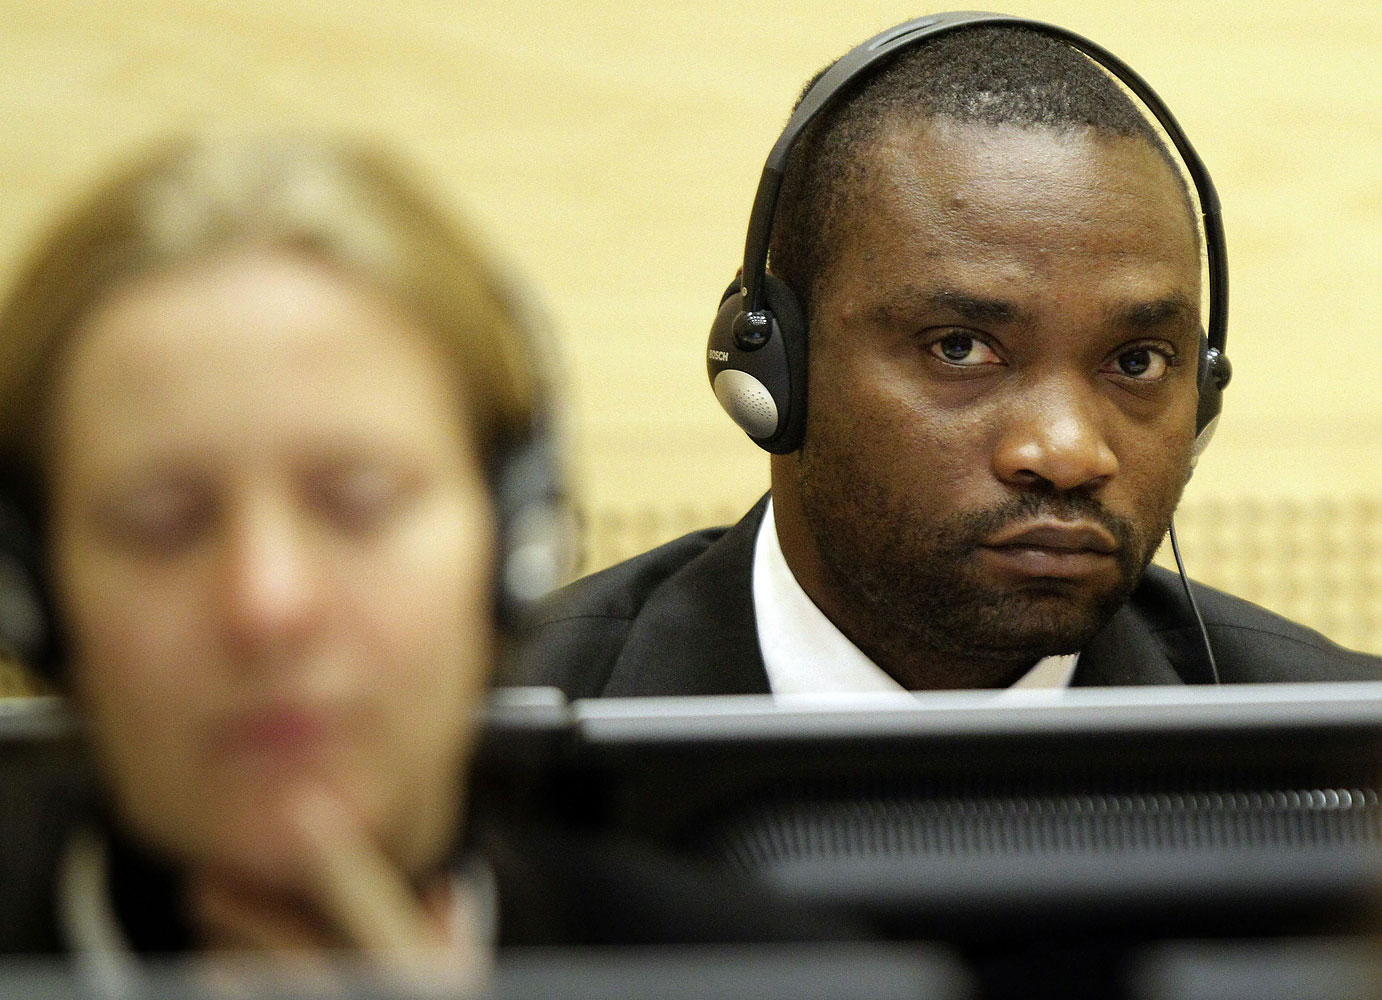 Former Congolese warlord militiaman Germain Katanga sitting in the courtroom of the International Criminal Court in The Hague in 2009.